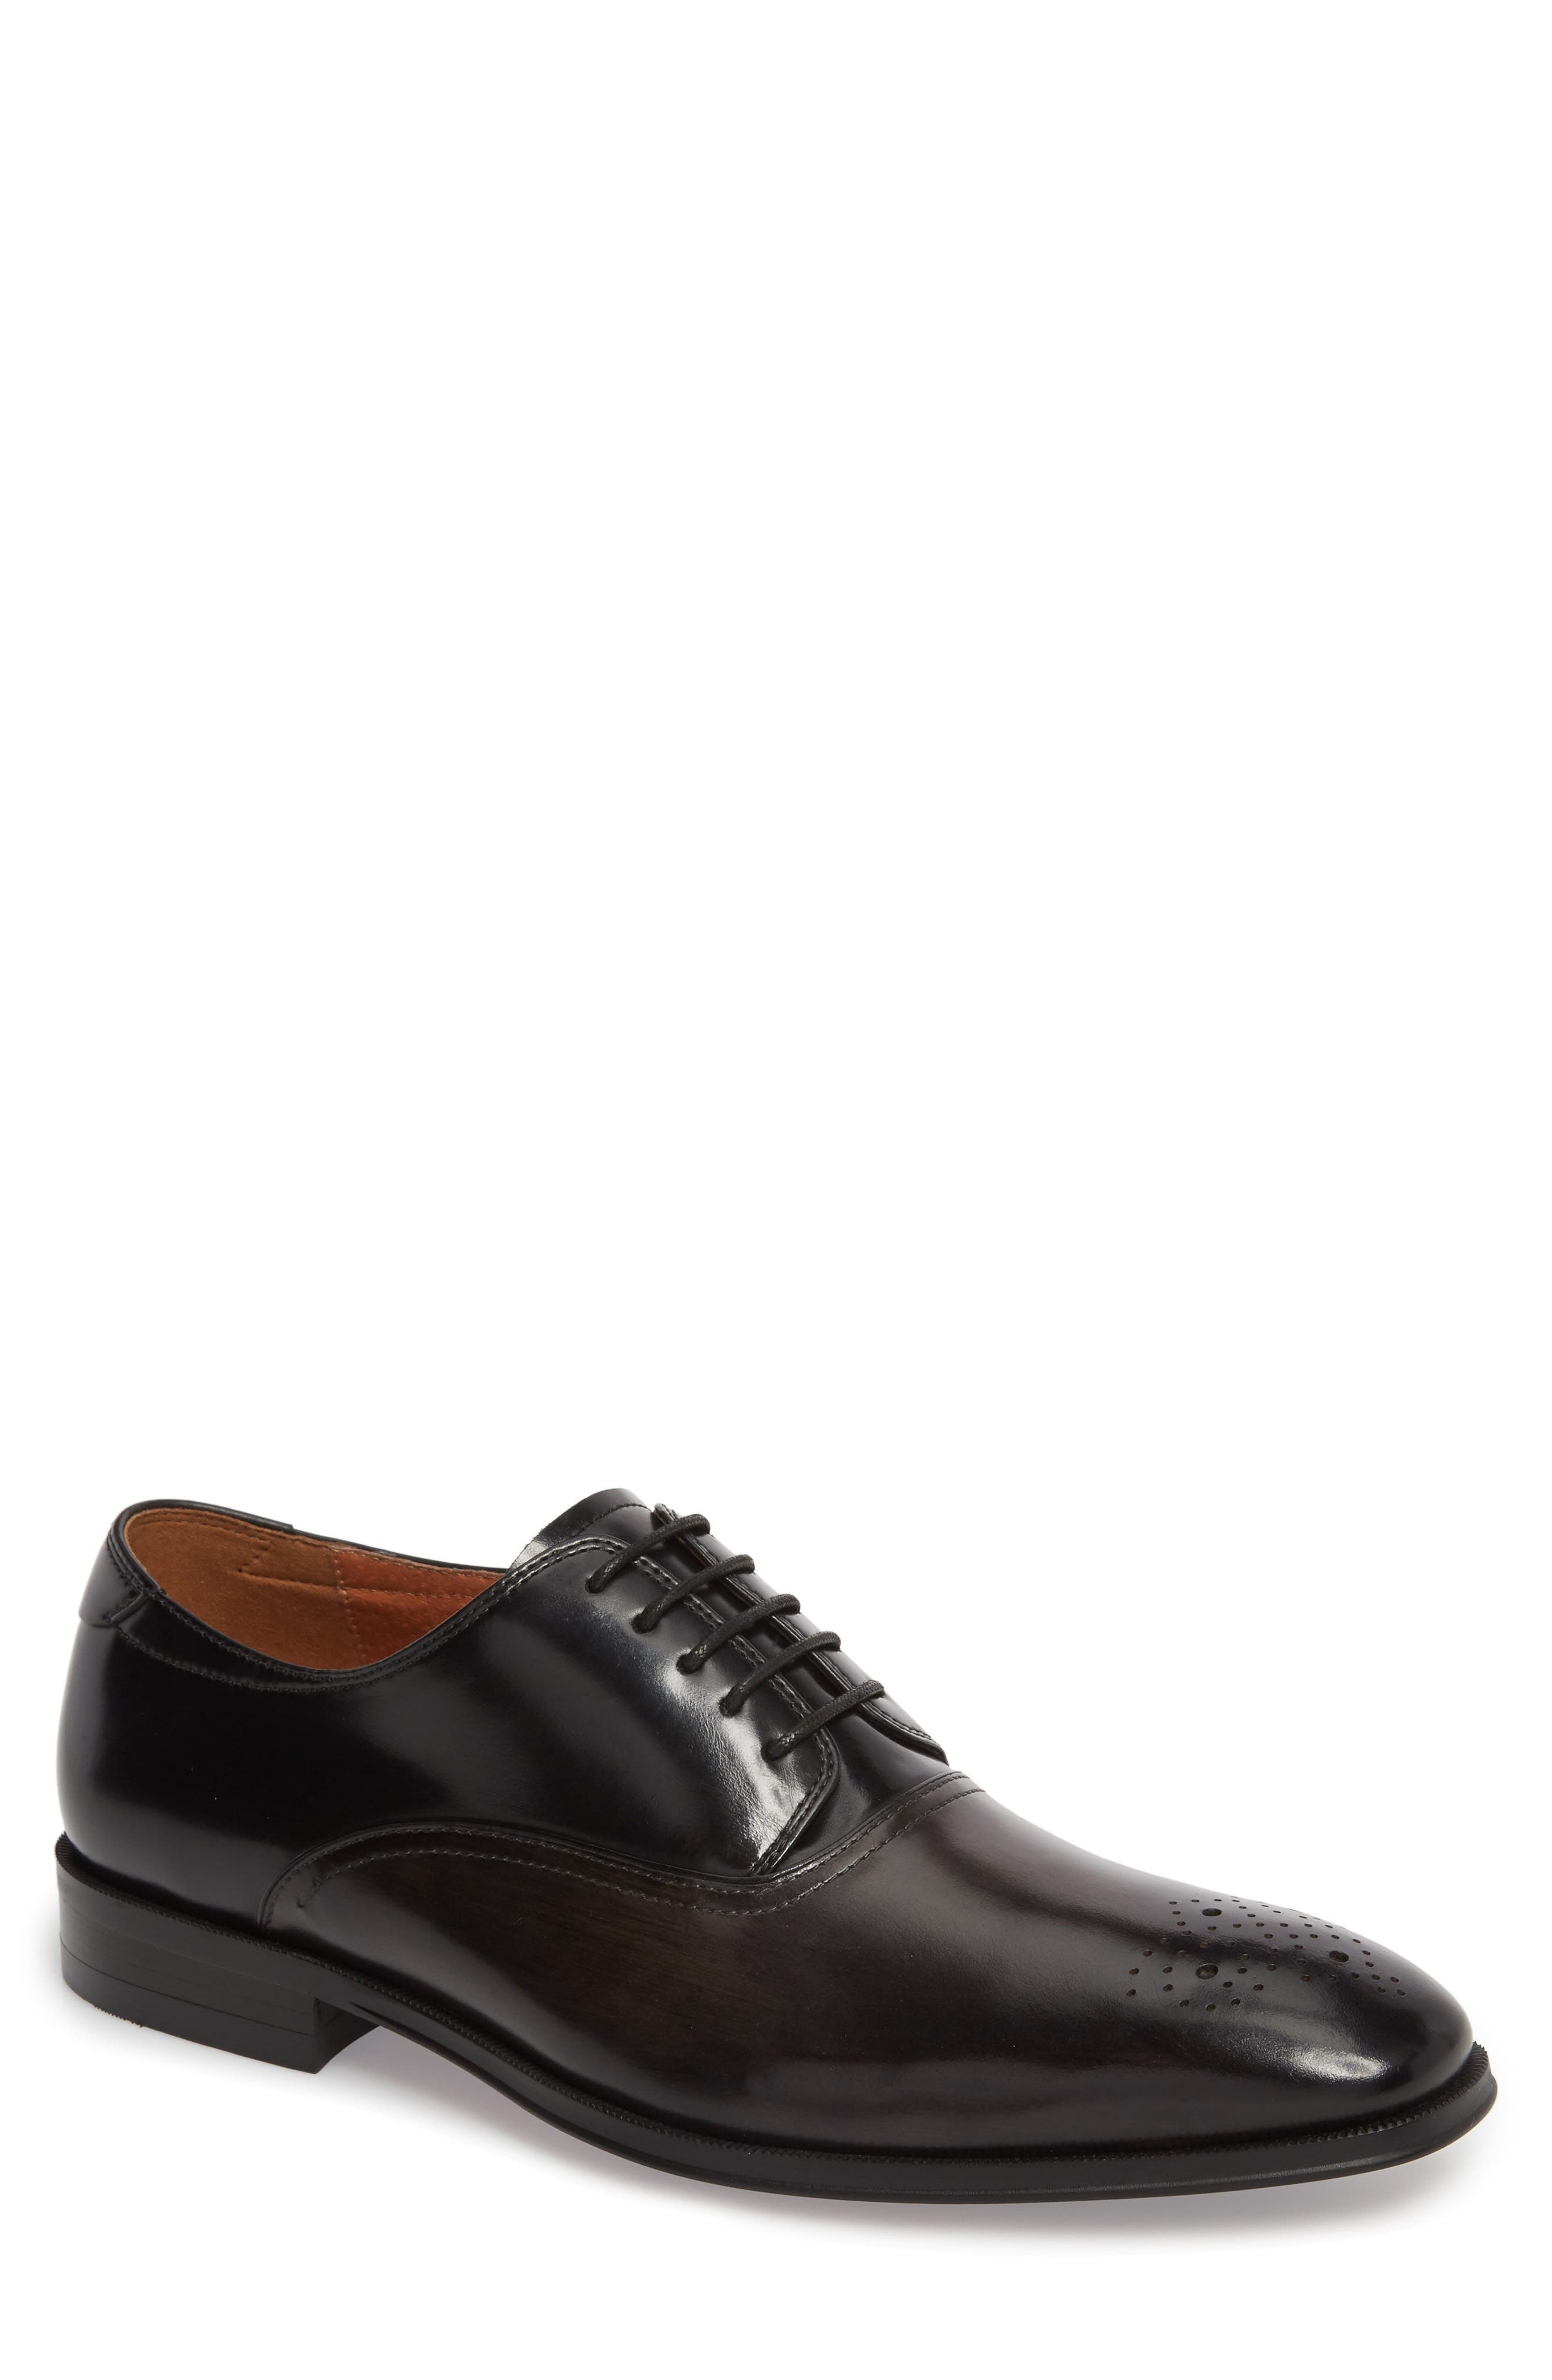 FLORSHEIM Belfast Brogued Derby, Main, color, GRAY/ BLACK LEATHER